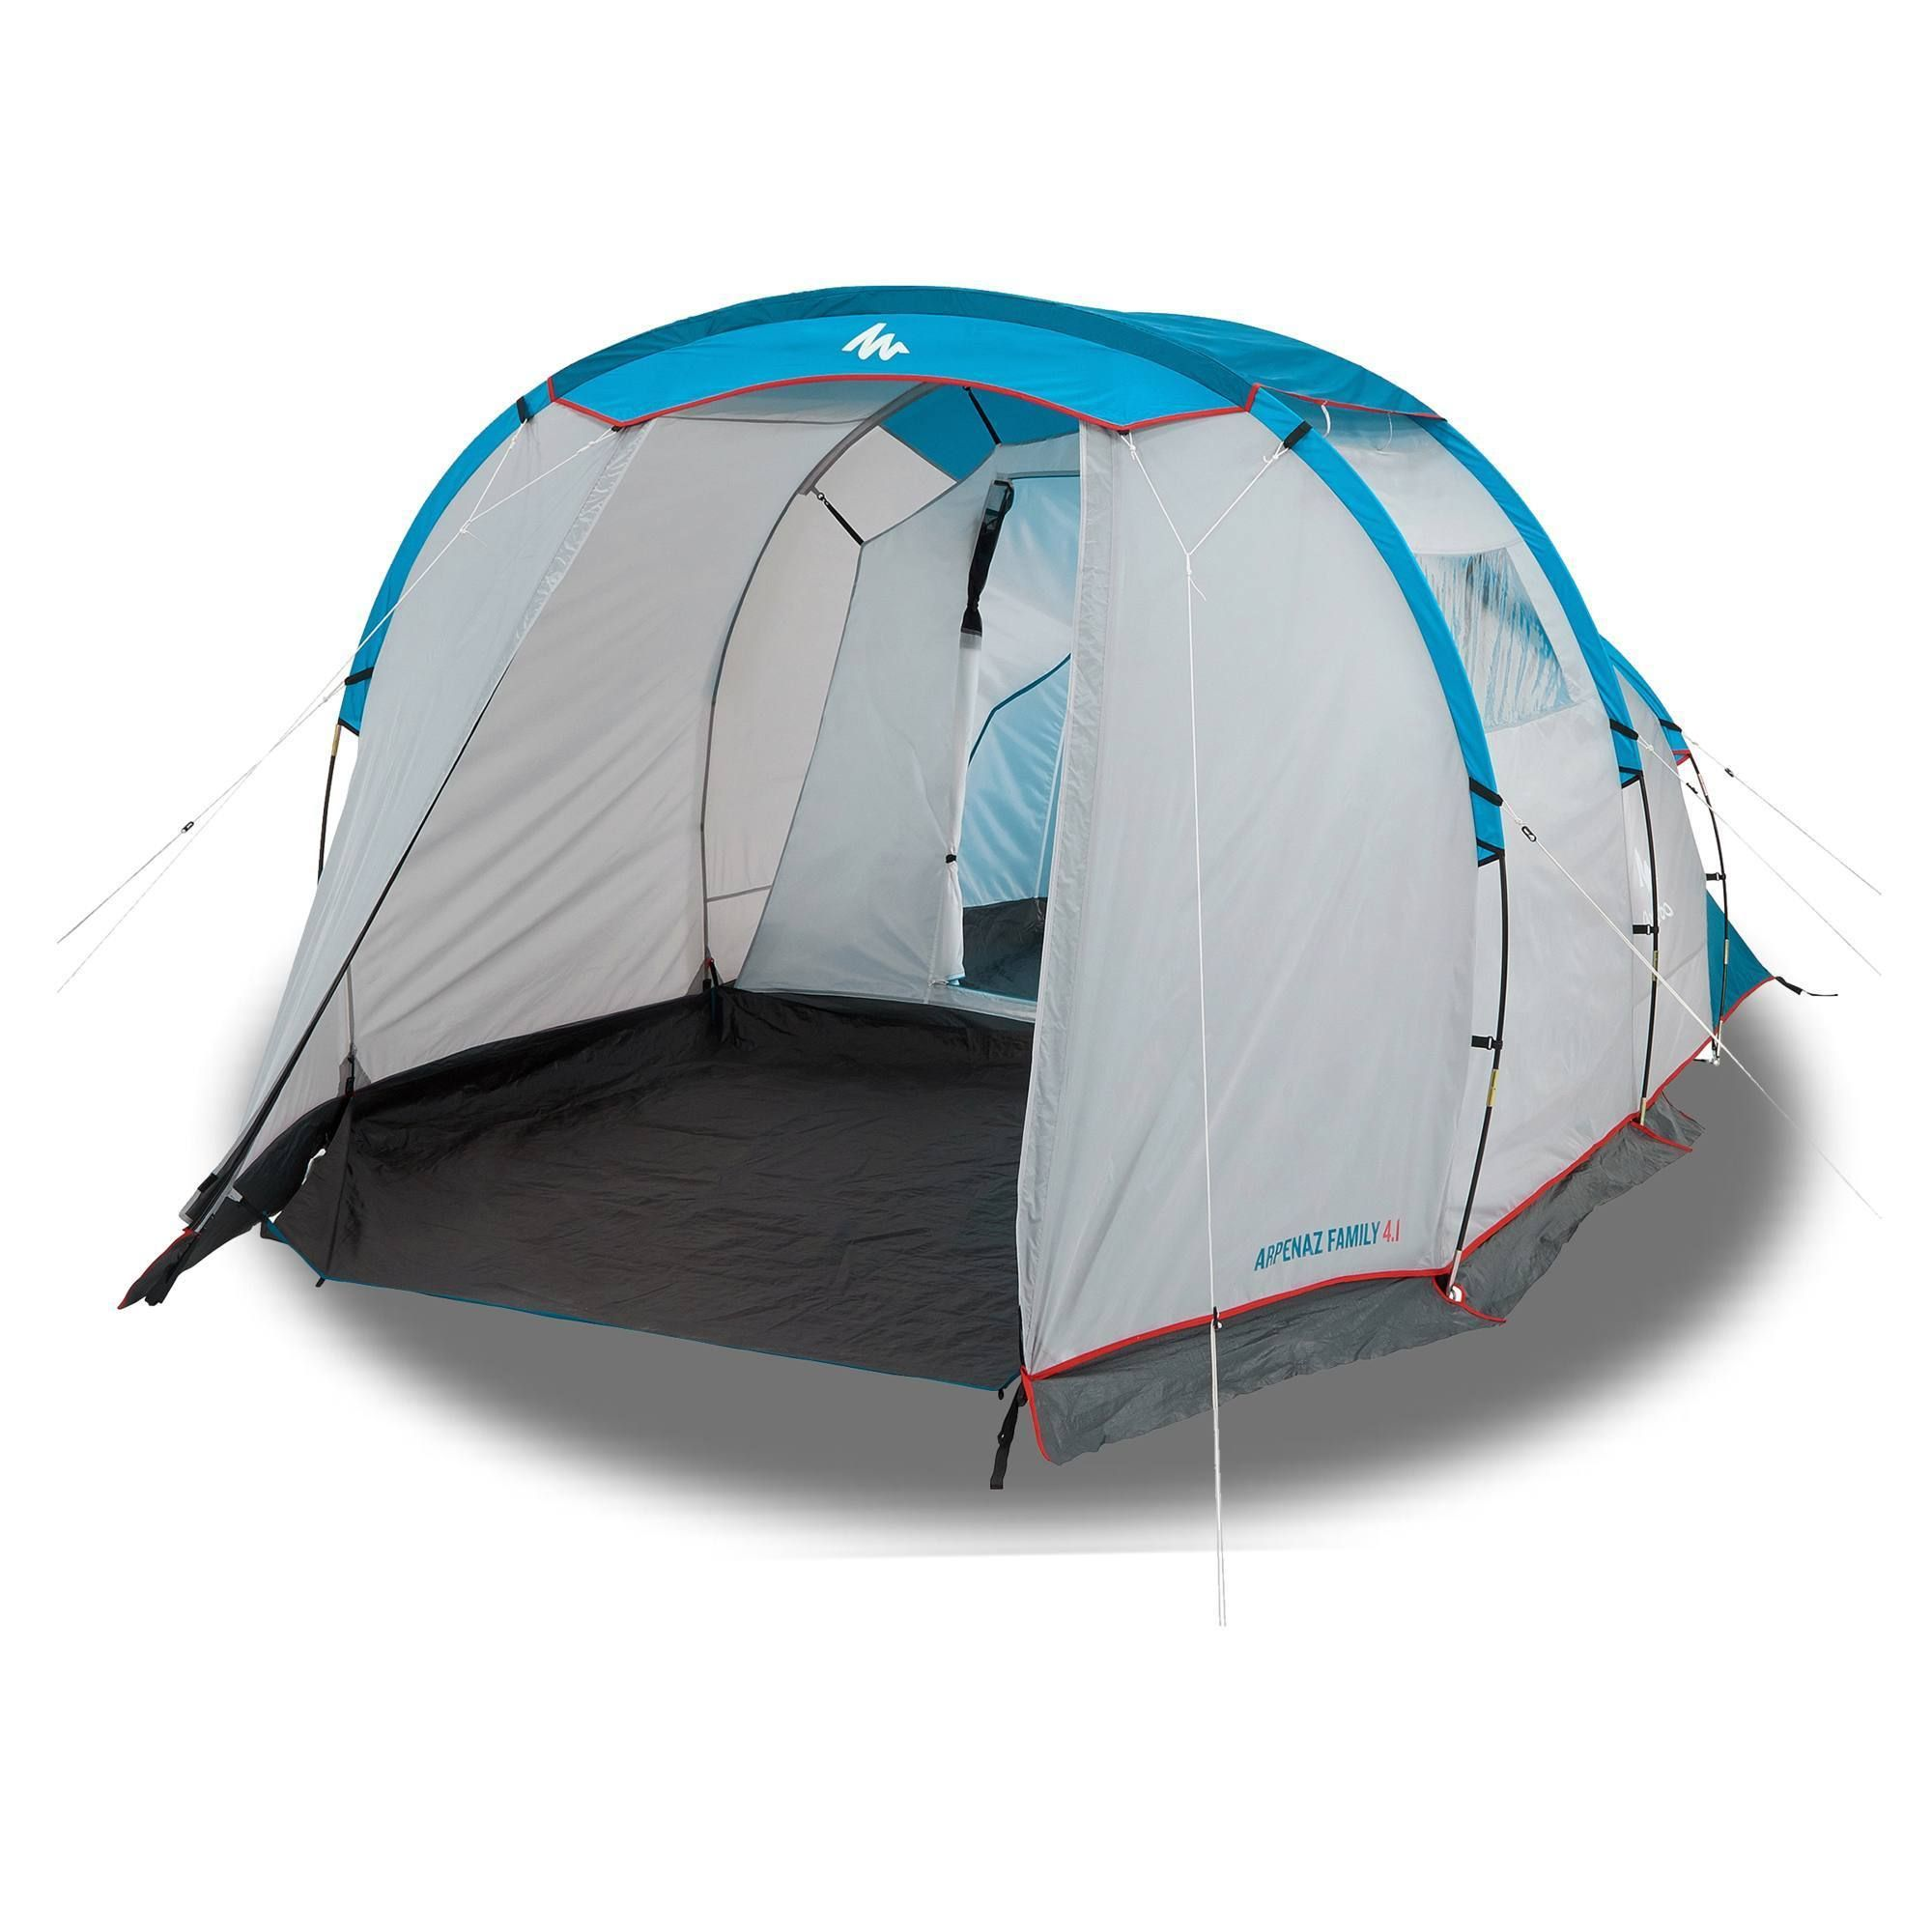 Quechua By Decathlon Arpenaz Camping Tent 4 1 4 People 1 Bedroom Walmart Com In 2020 Family Tent Camping Tent Tent Camping